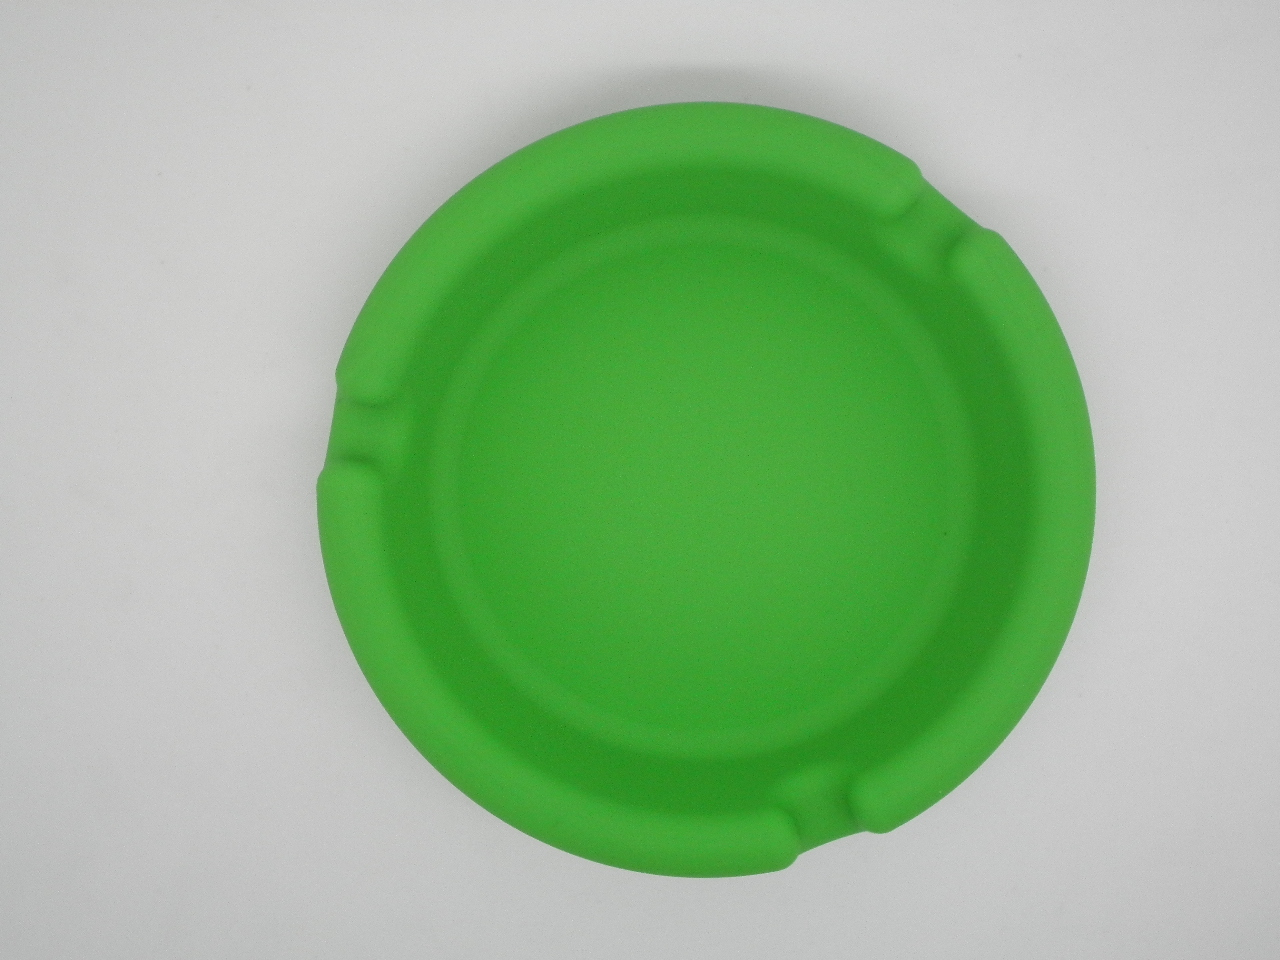 http://www.refinehksilicone.cn/data/images/product/20180417101616_490.JPG